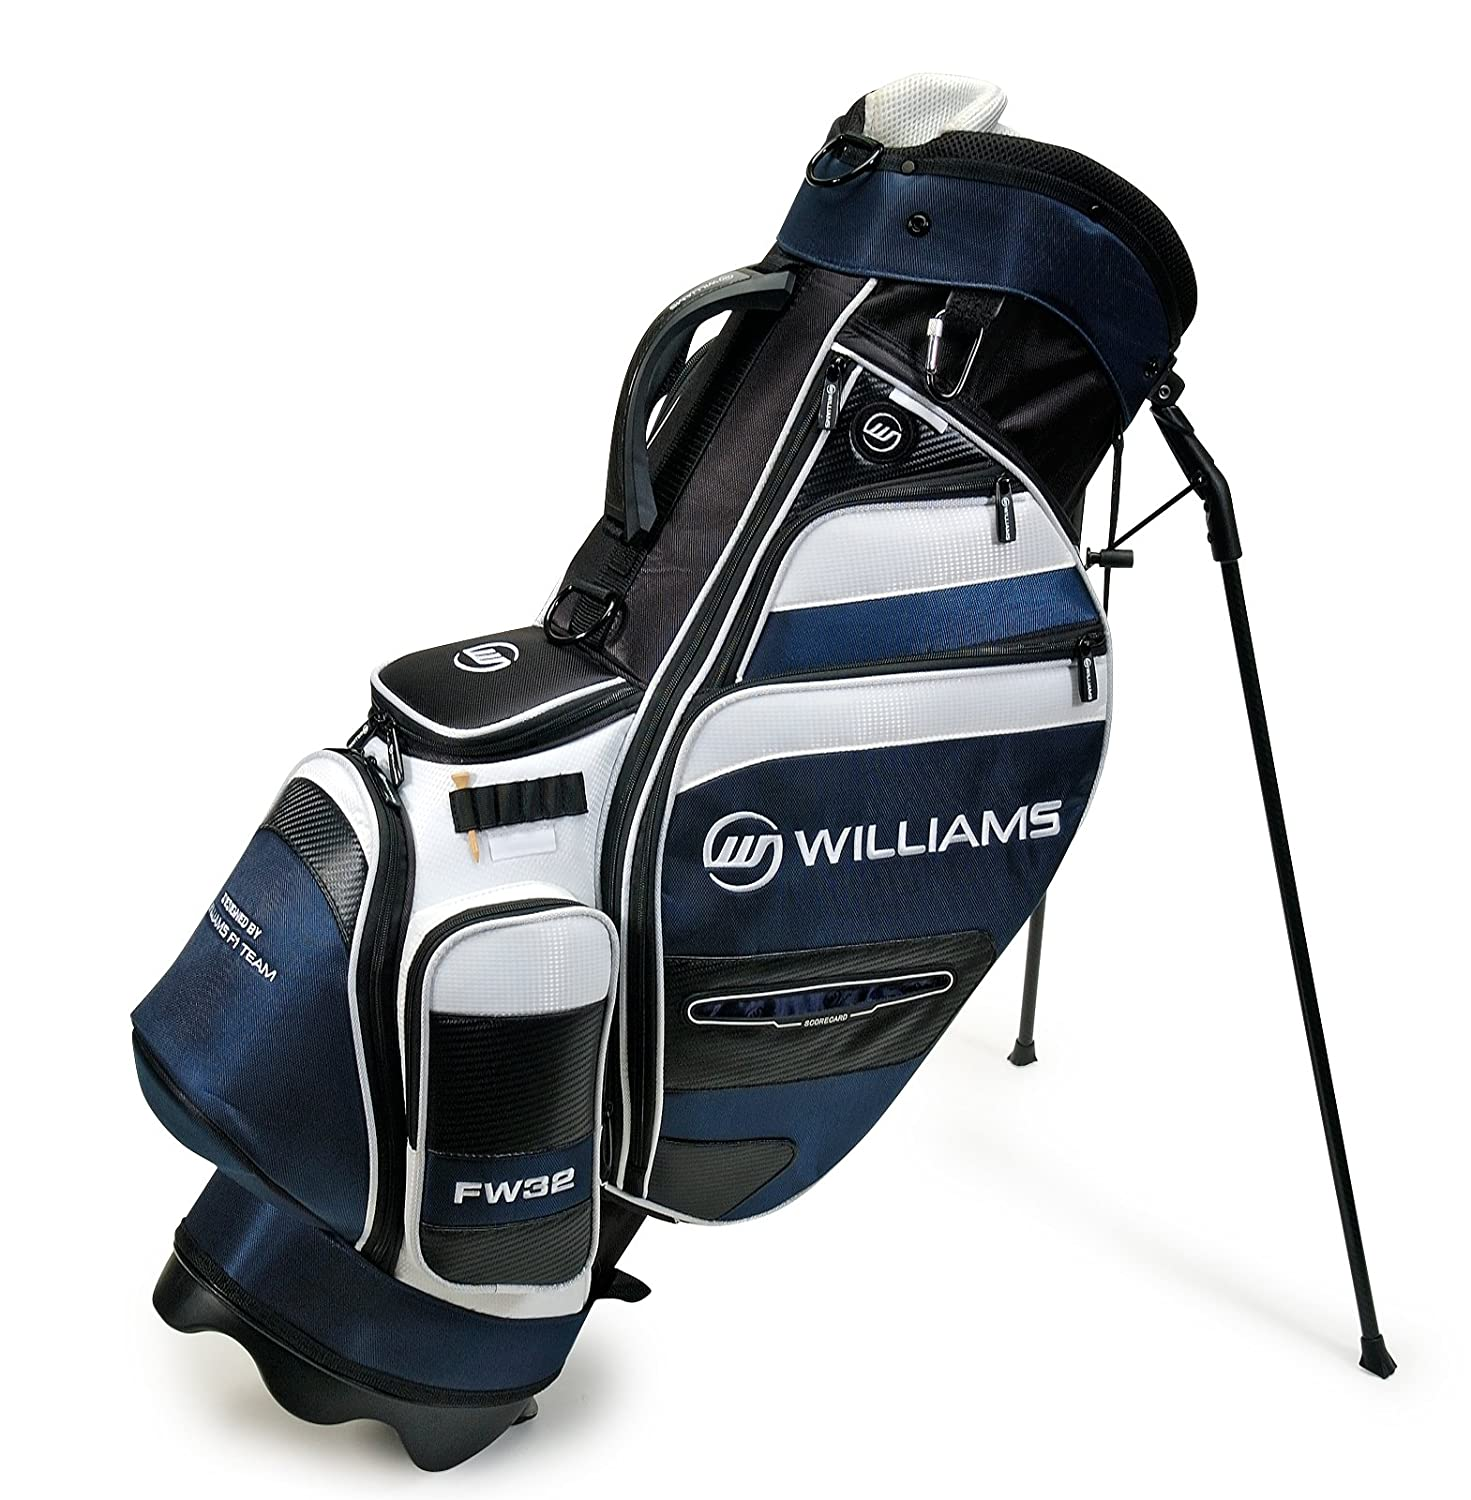 Amazon.com: Williams golf FW32 bolsa de soporte: Sports ...